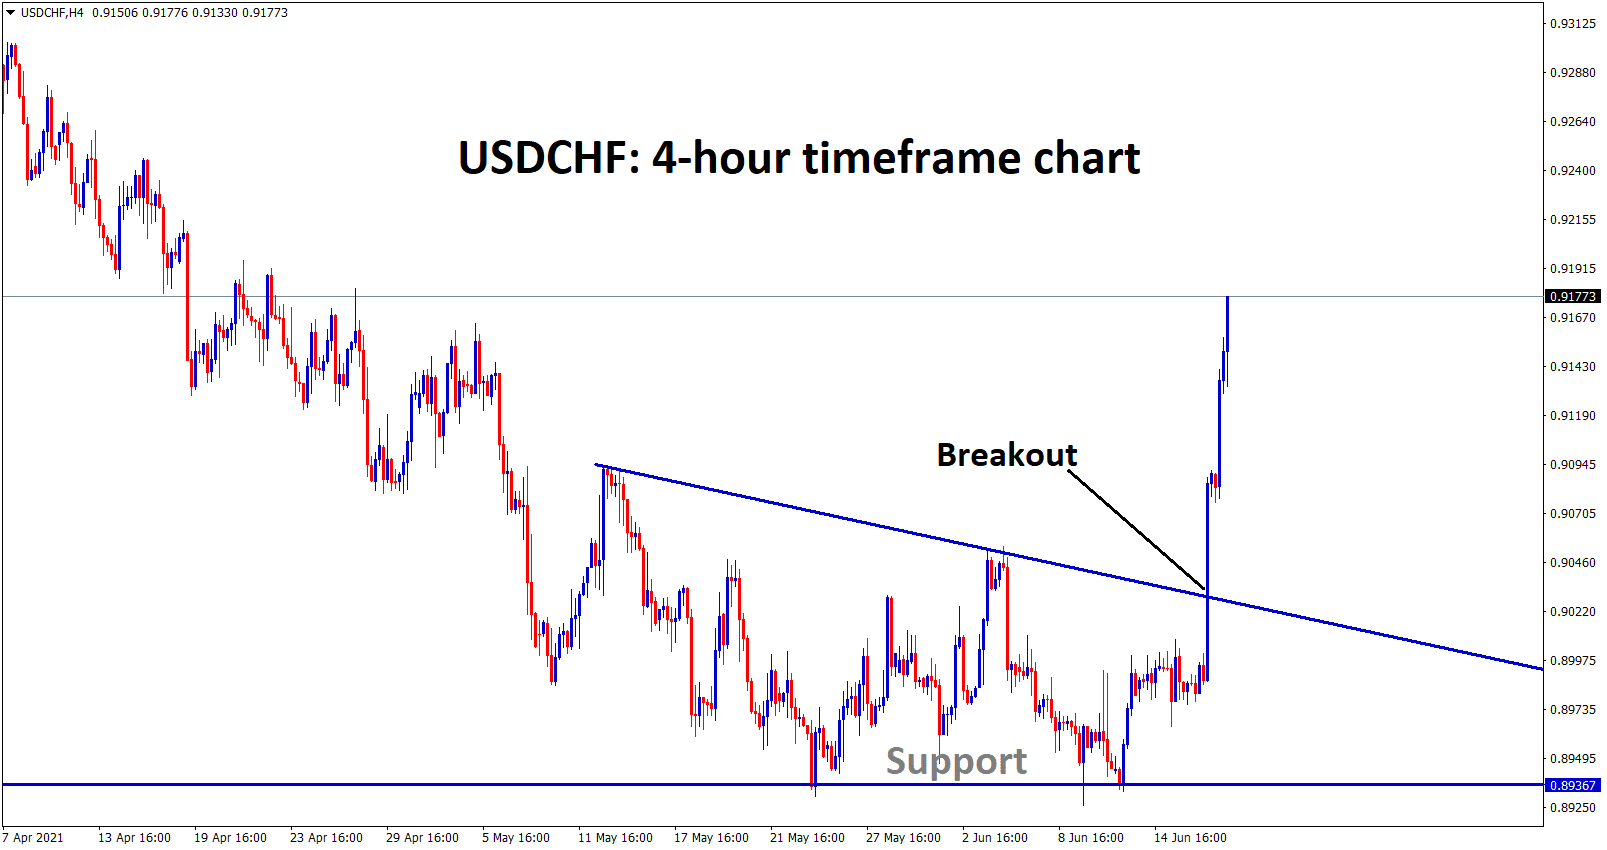 USDCHF has broken the top level of the Descending Triangle pattern